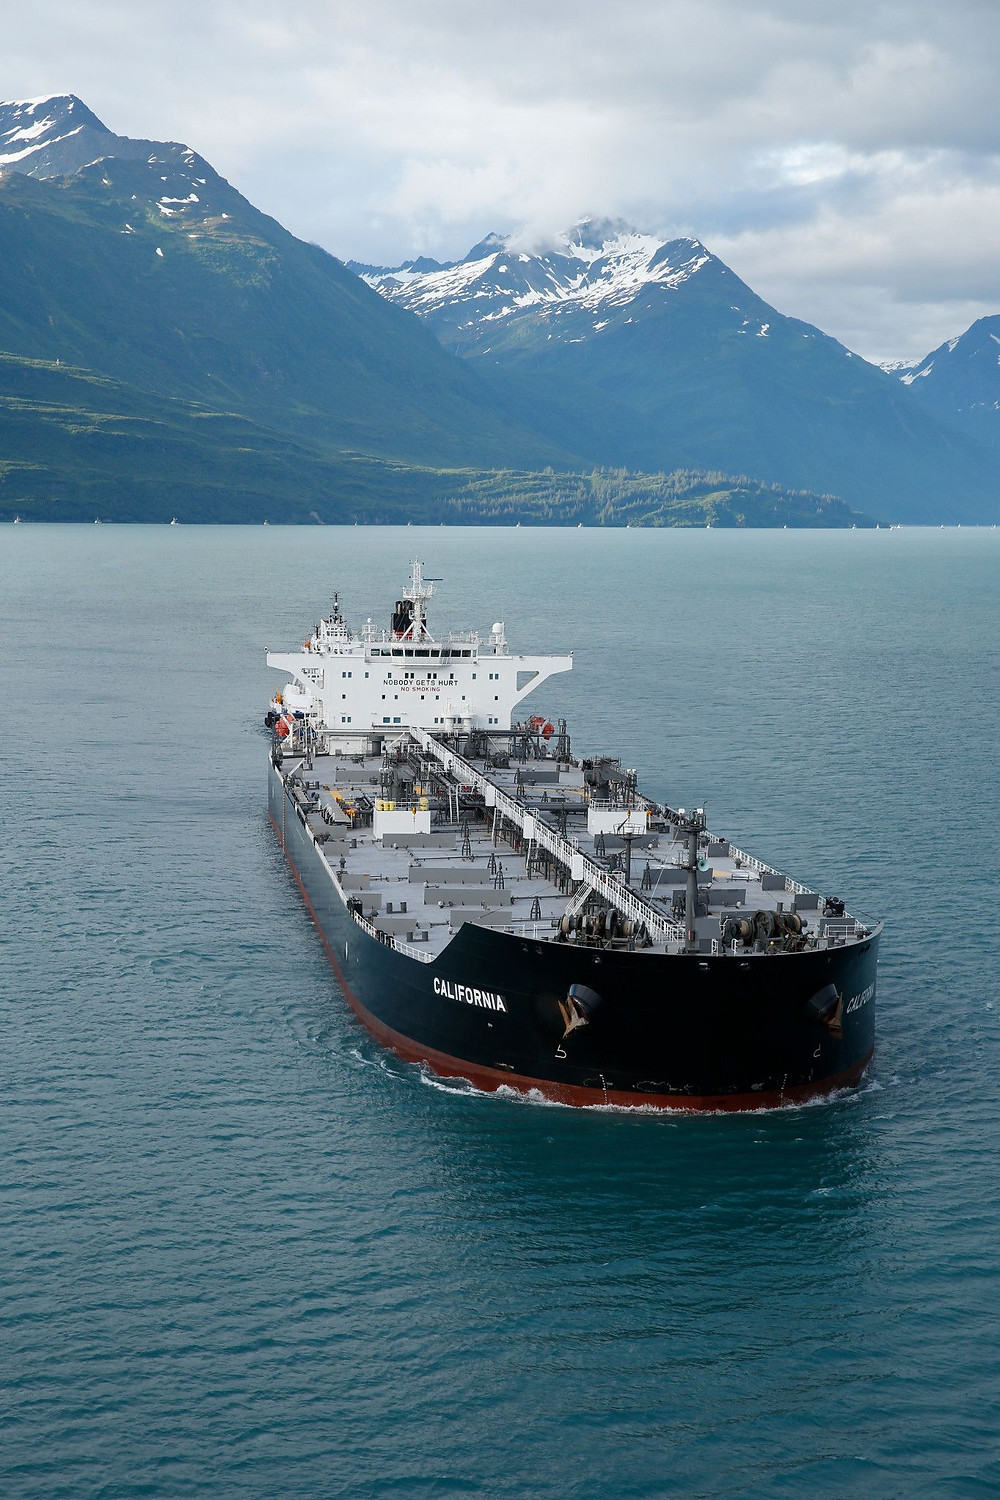 Successful trials in Alaskan waters on board the Aframax tanker California contributed to the decision by Crowley Maritime Corp. to install Fleet Xpress across the majority of its fleet.